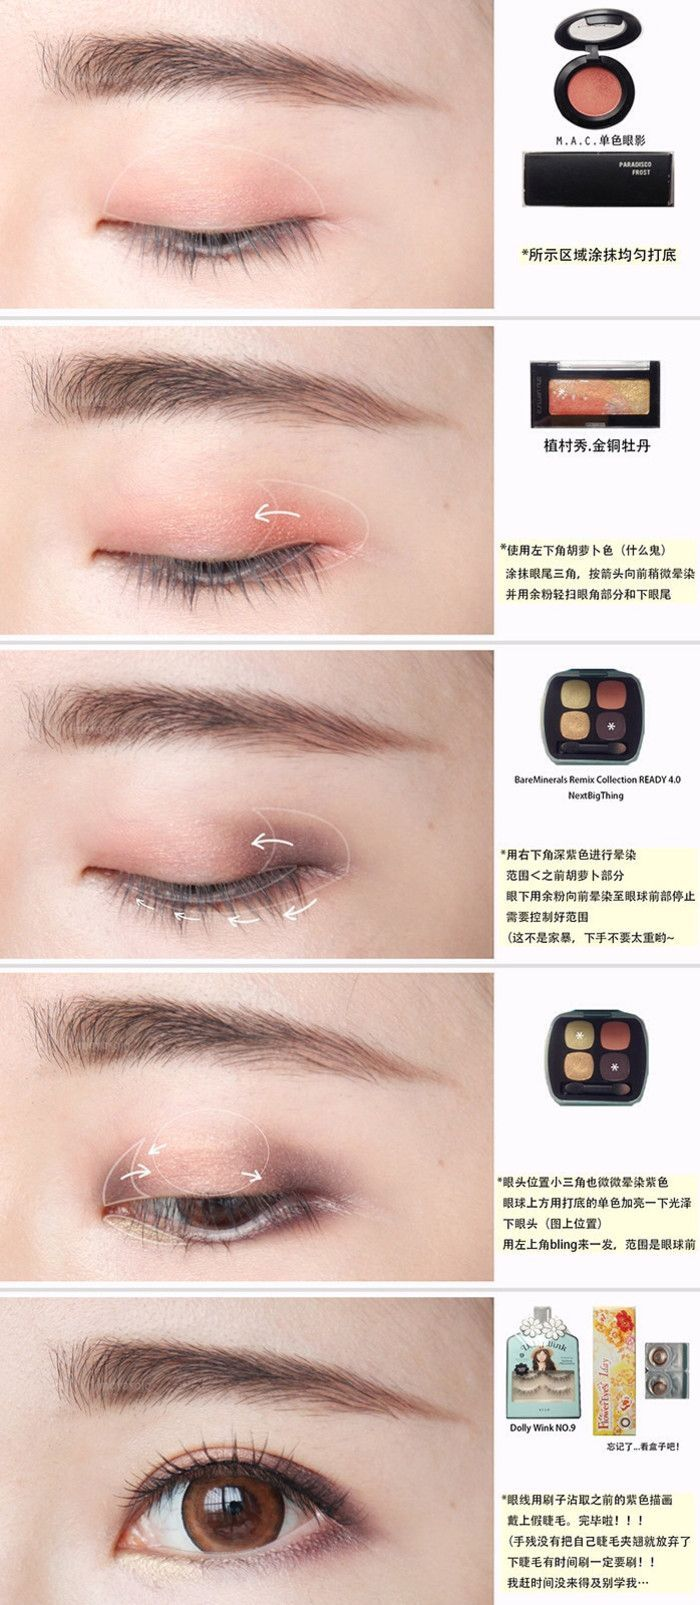 Web Content Writer Natural Make Up  Natural Makeup Ideas  Pinterest  Korean Makeup  Tutorials Korean Make Up And Natural How To Write A Thesis Statement For An Essay also Living A Healthy Lifestyle Essay Natural Make Up  Natural Makeup Ideas  Pinterest  Korean Makeup  Cheap Custom Writing